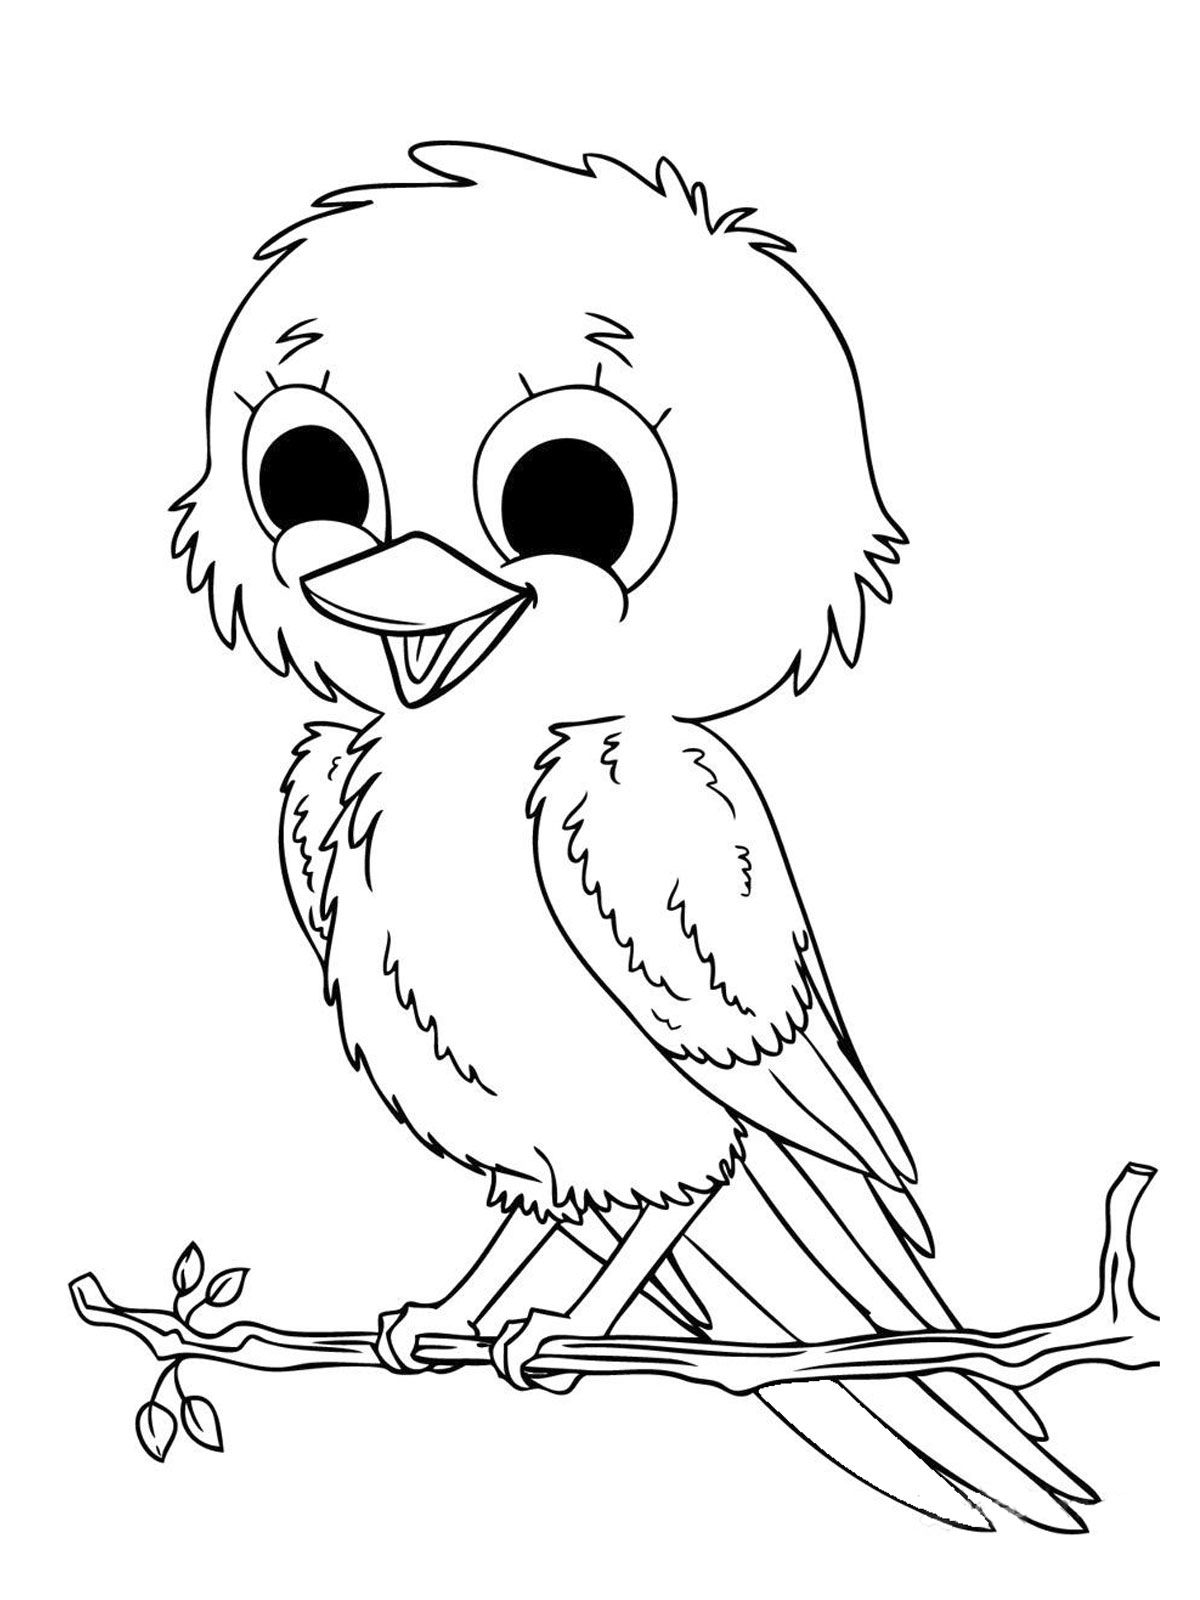 It's just an image of Accomplished Printable Animal Coloring Pages